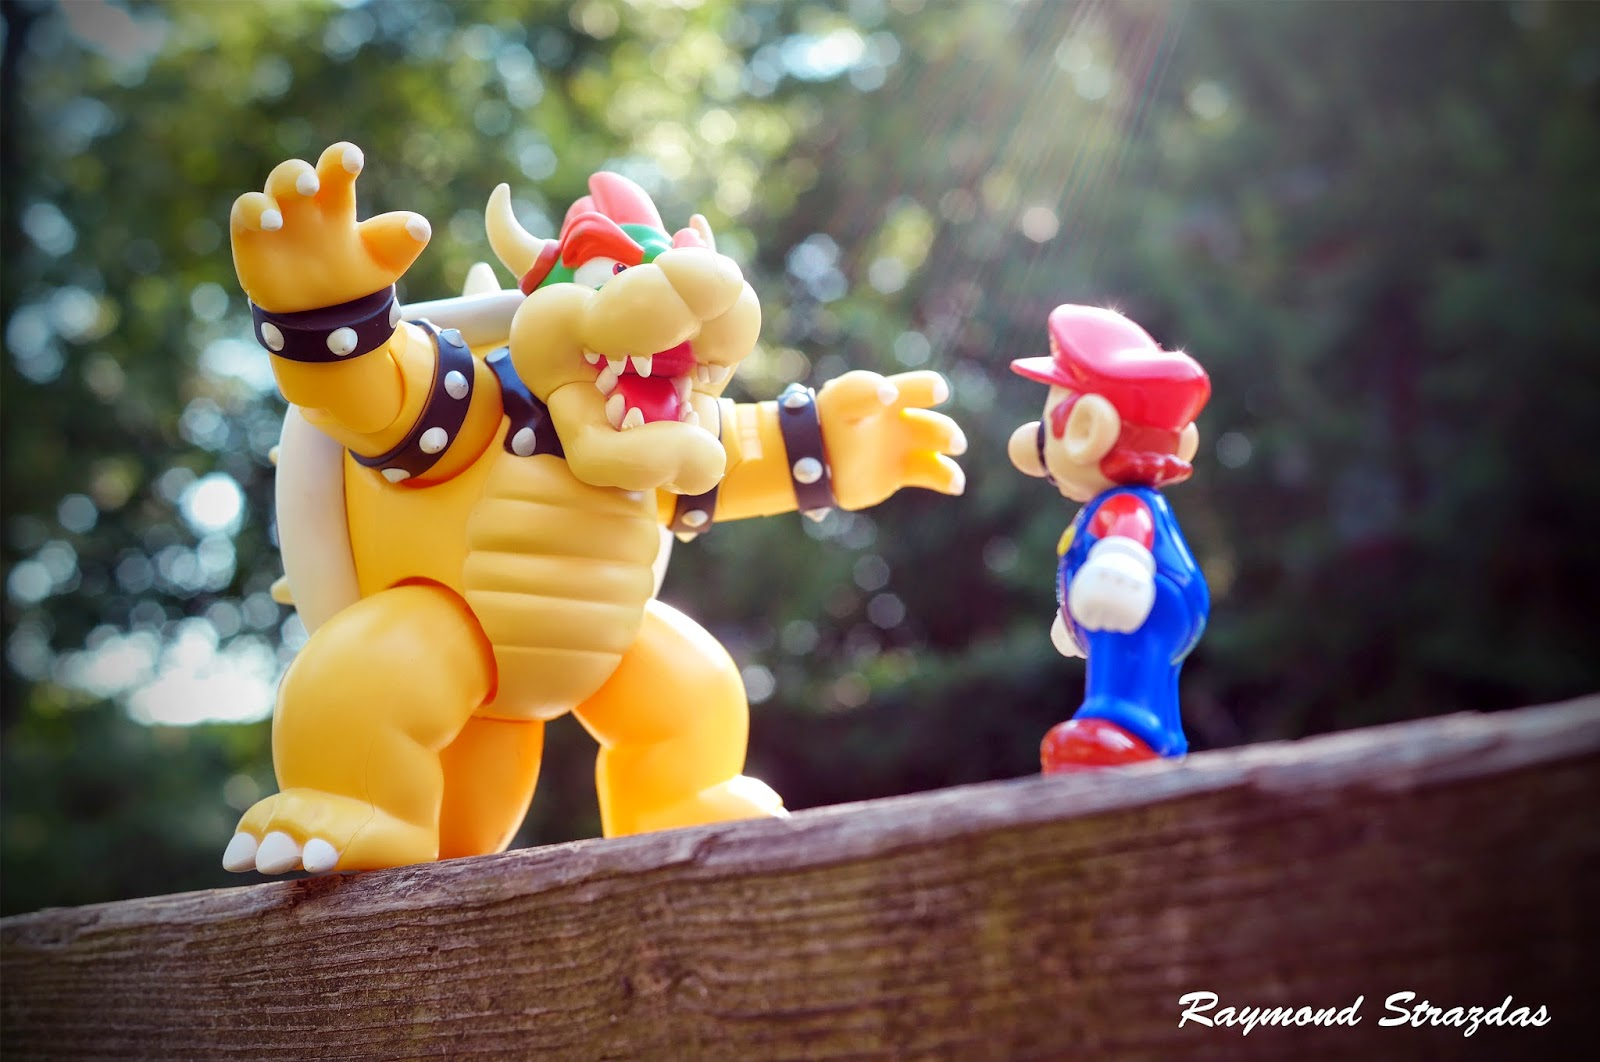 Mario vs. Bowser battle photo by raystrazdas